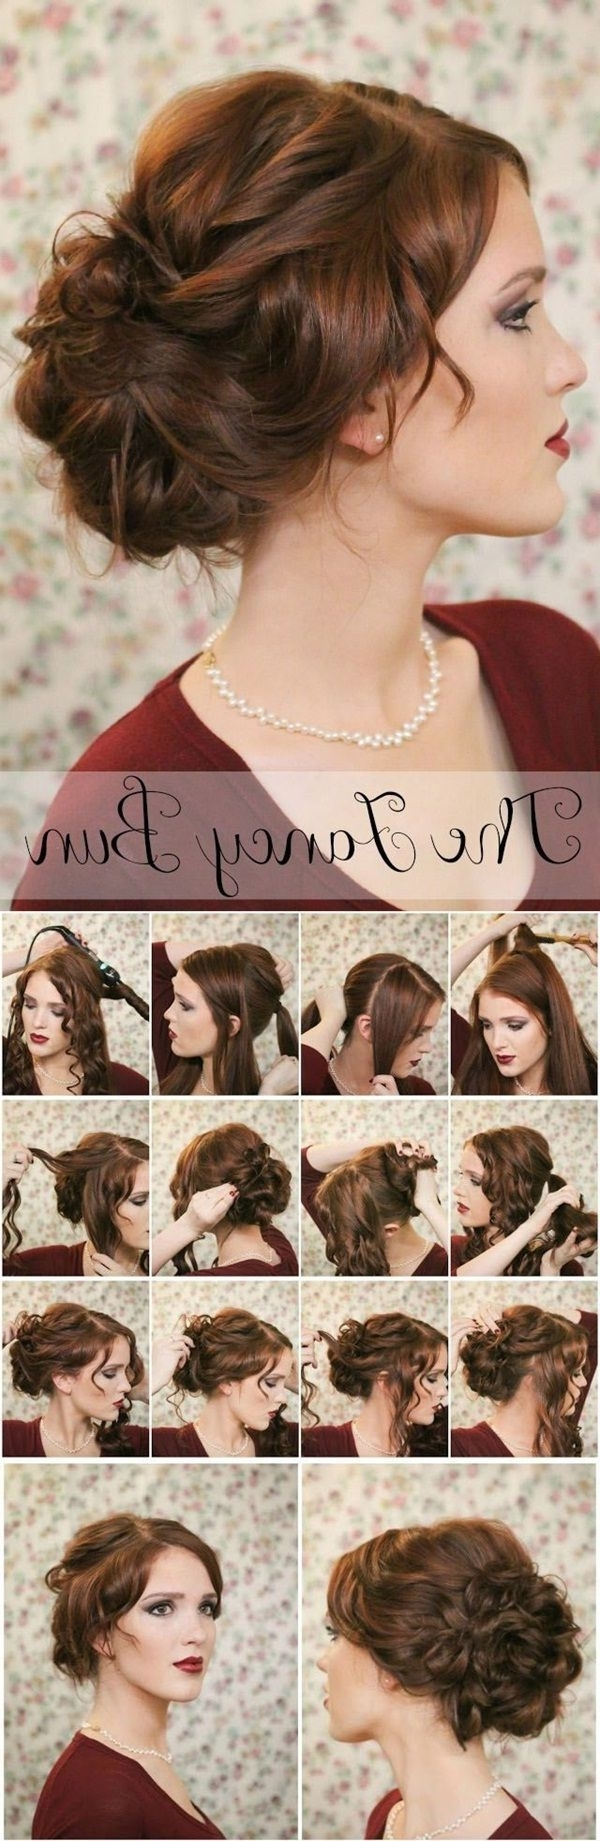 20 Diy Wedding Hairstyles With Tutorials To Try On Your Own Regarding Most Popular Wedding Hairstyles Updo Tutorial (View 15 of 15)